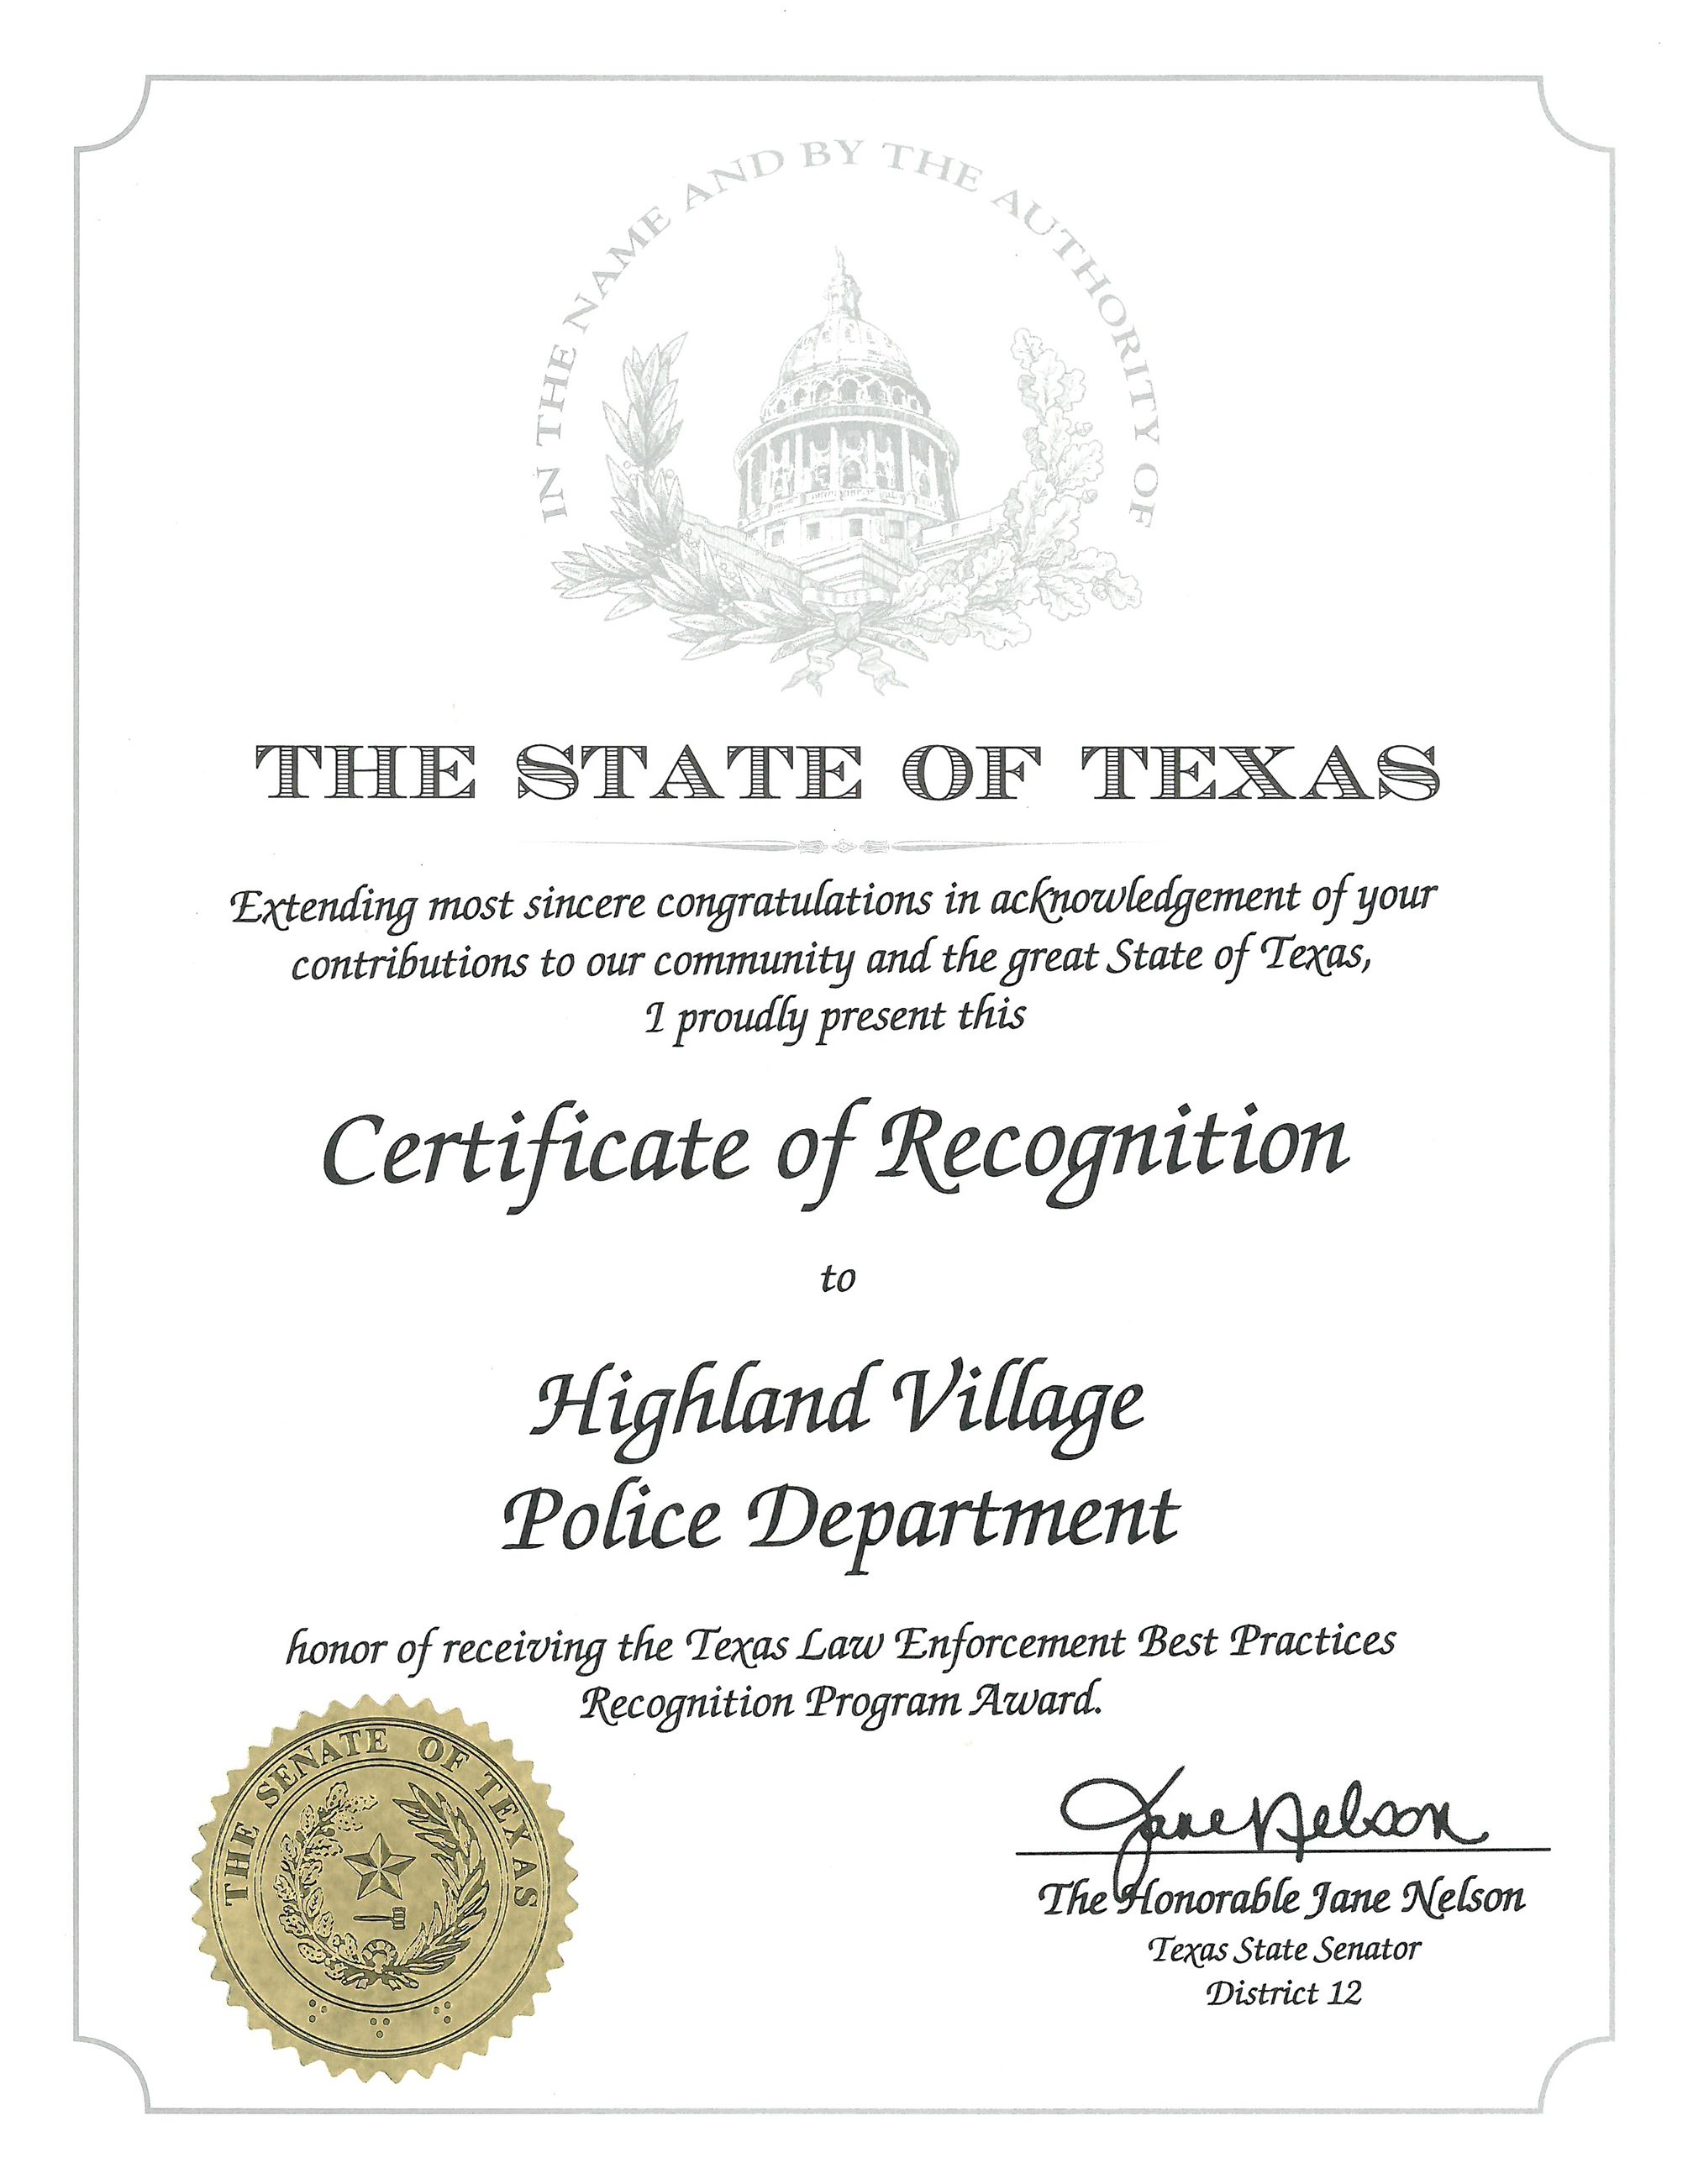 Certificate of Recognition - Senator Nelson